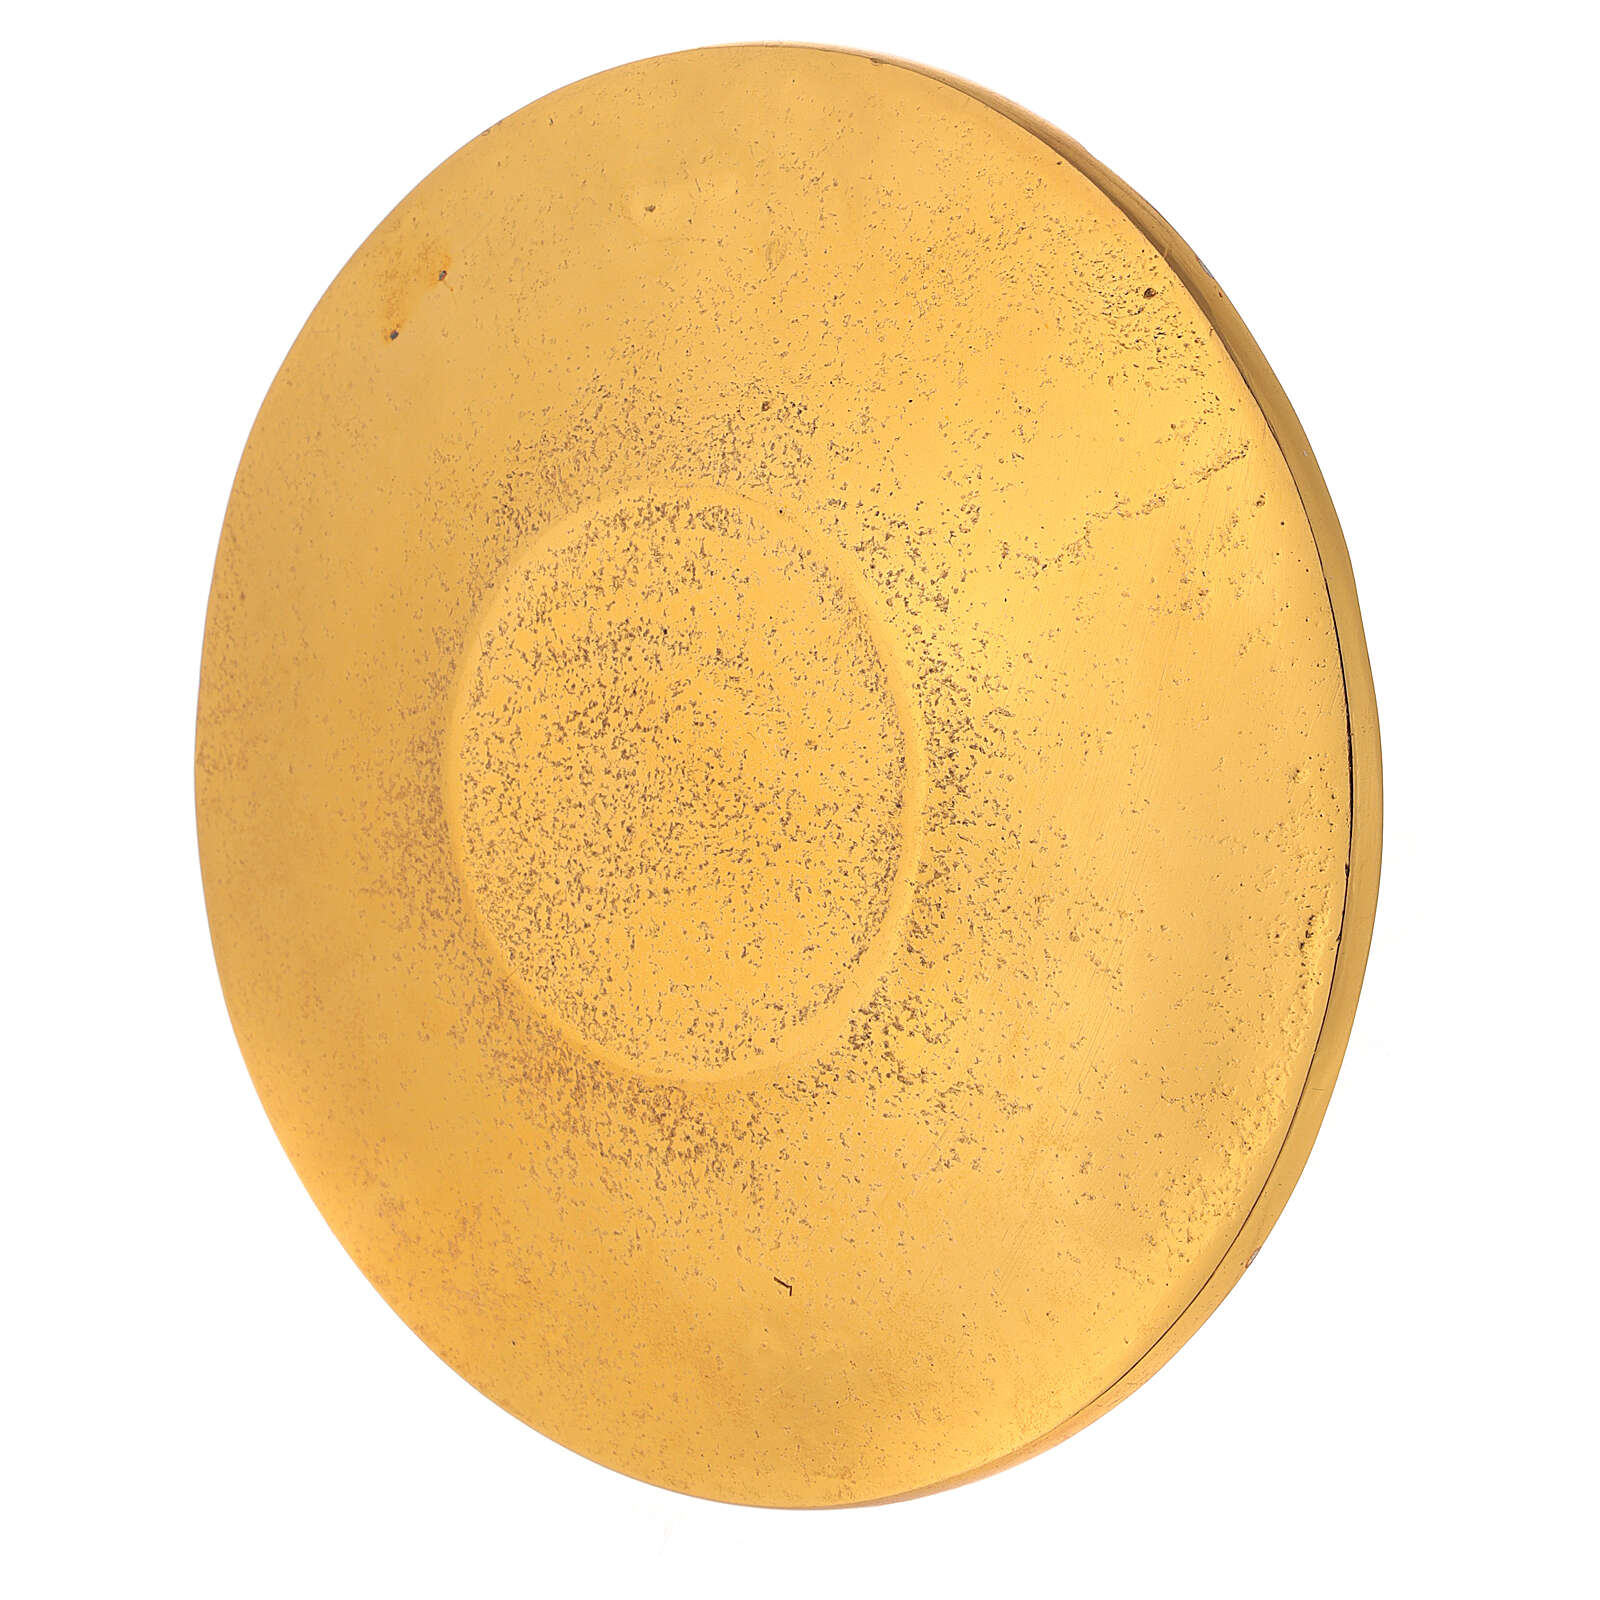 Gold plated aluminium plate for candles engraved with leaves d. 5 1/2 in 3